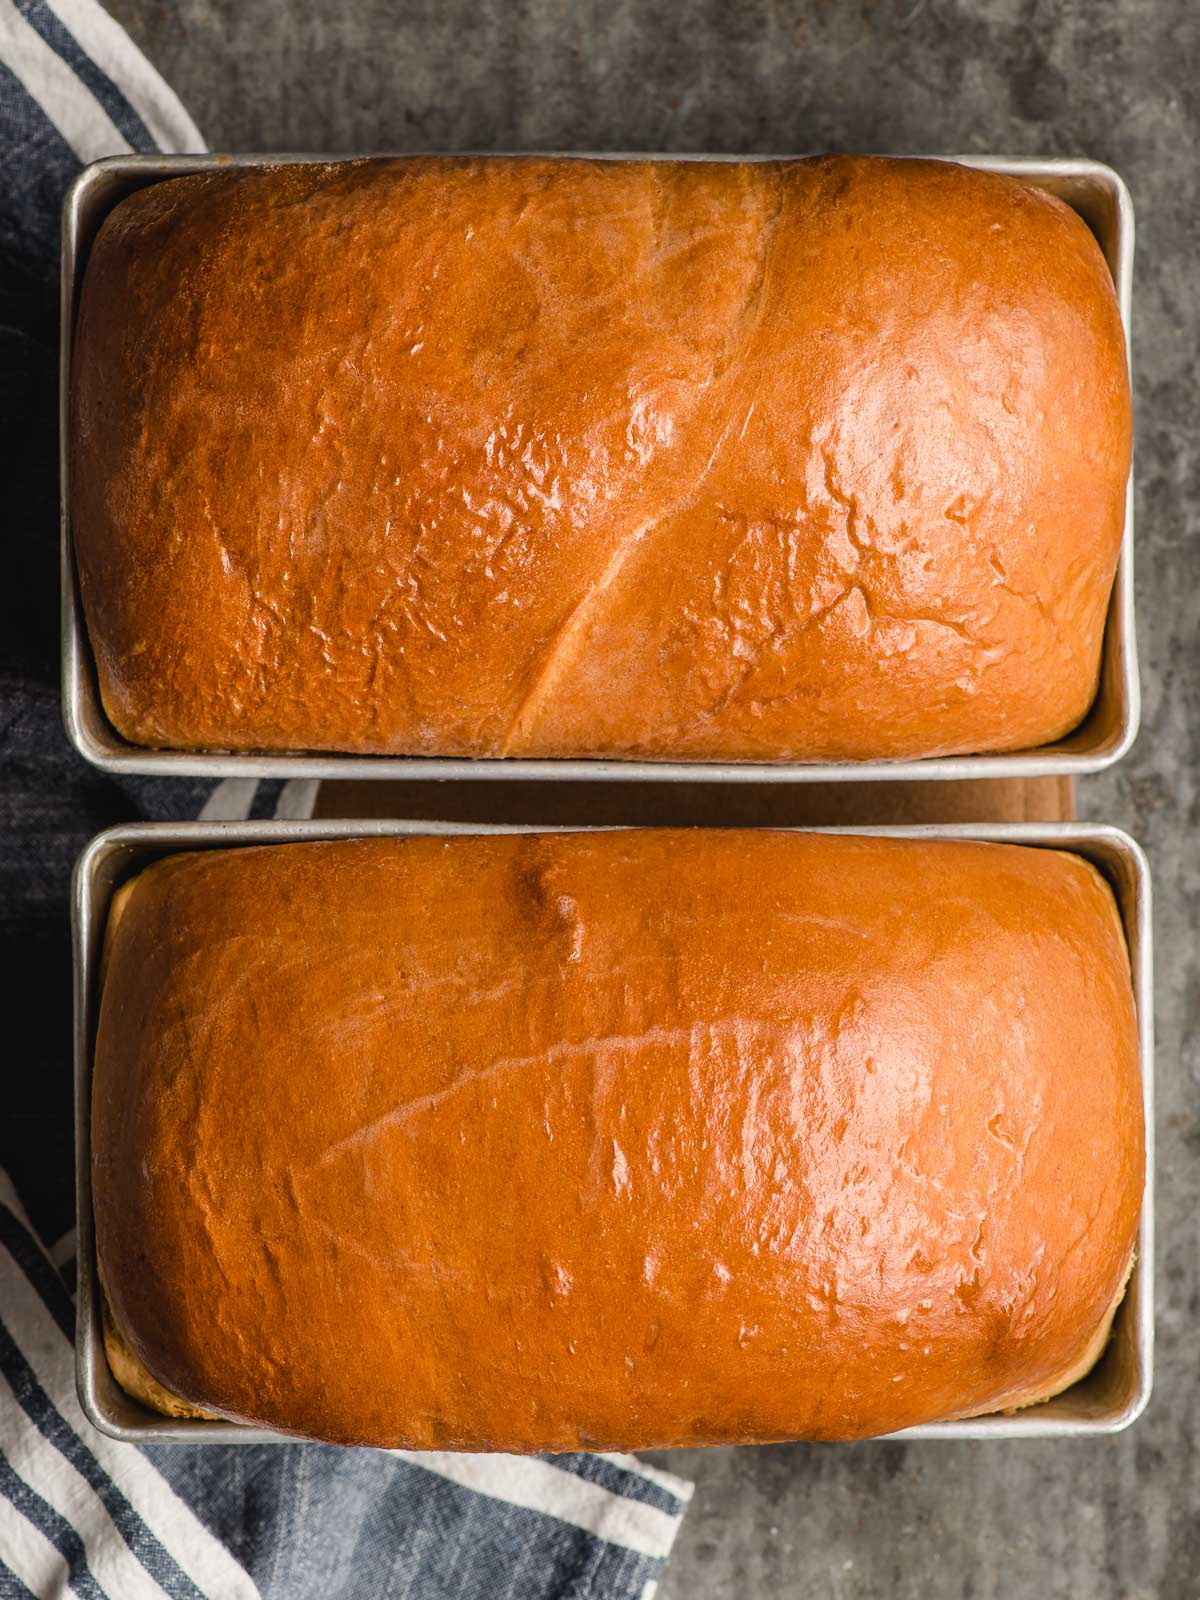 Two loaves of baked Amish white bread side by side.